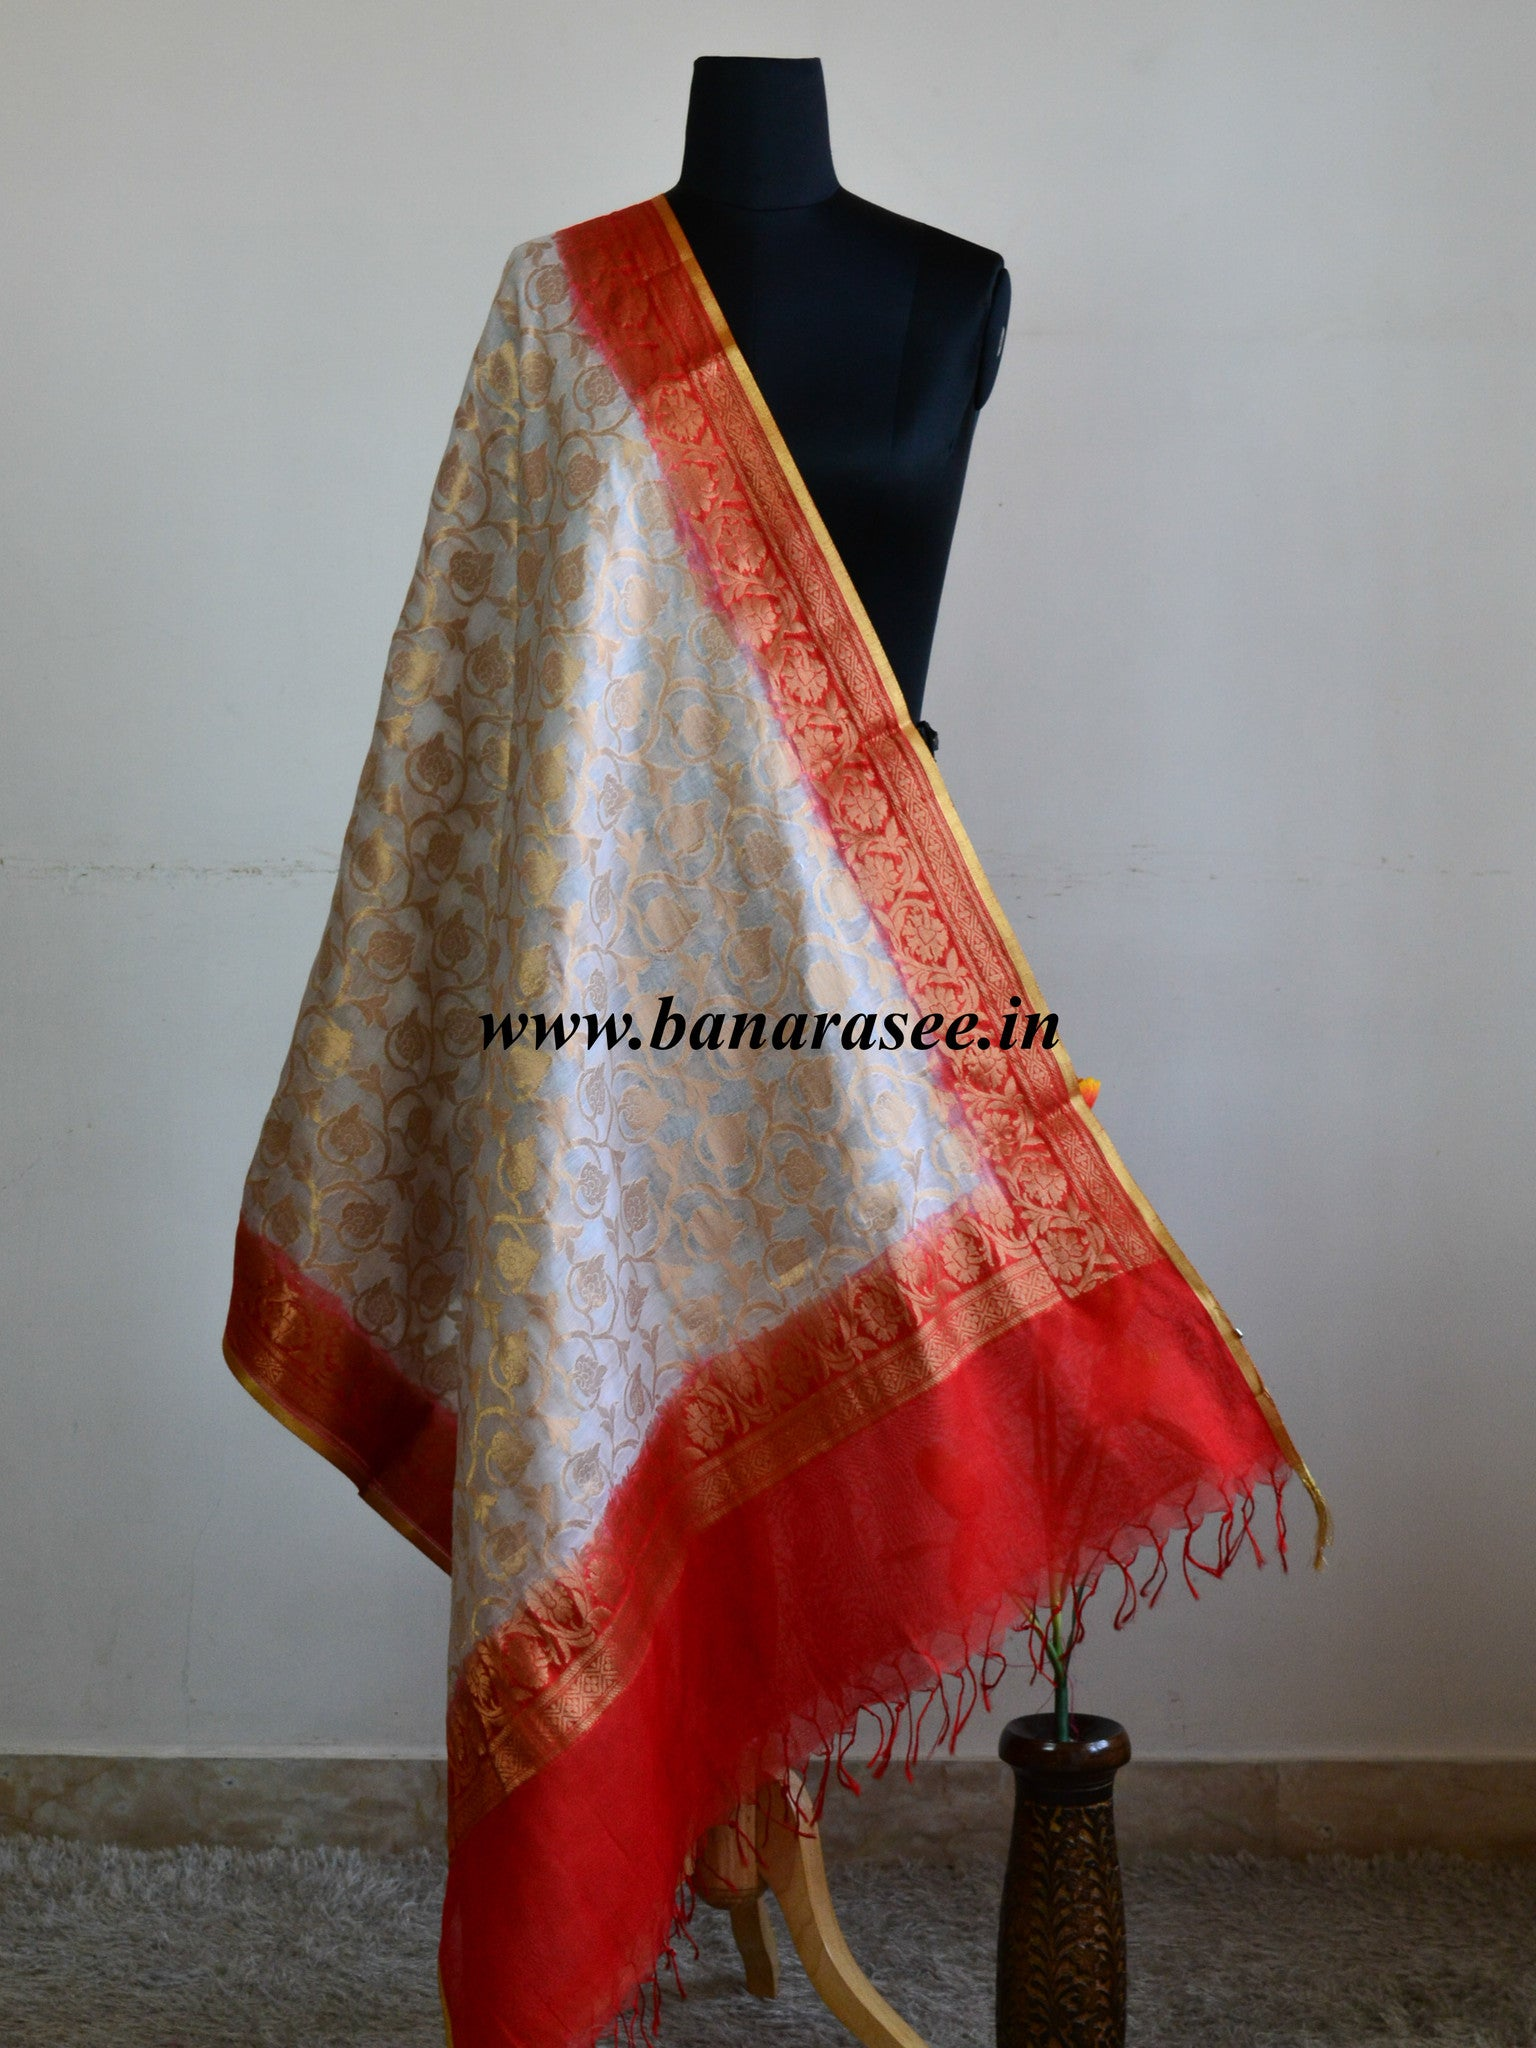 Banarasee/ Banarasi Cotton Silk Zari Jaal Dupatta With Contrast Red Border-Off white